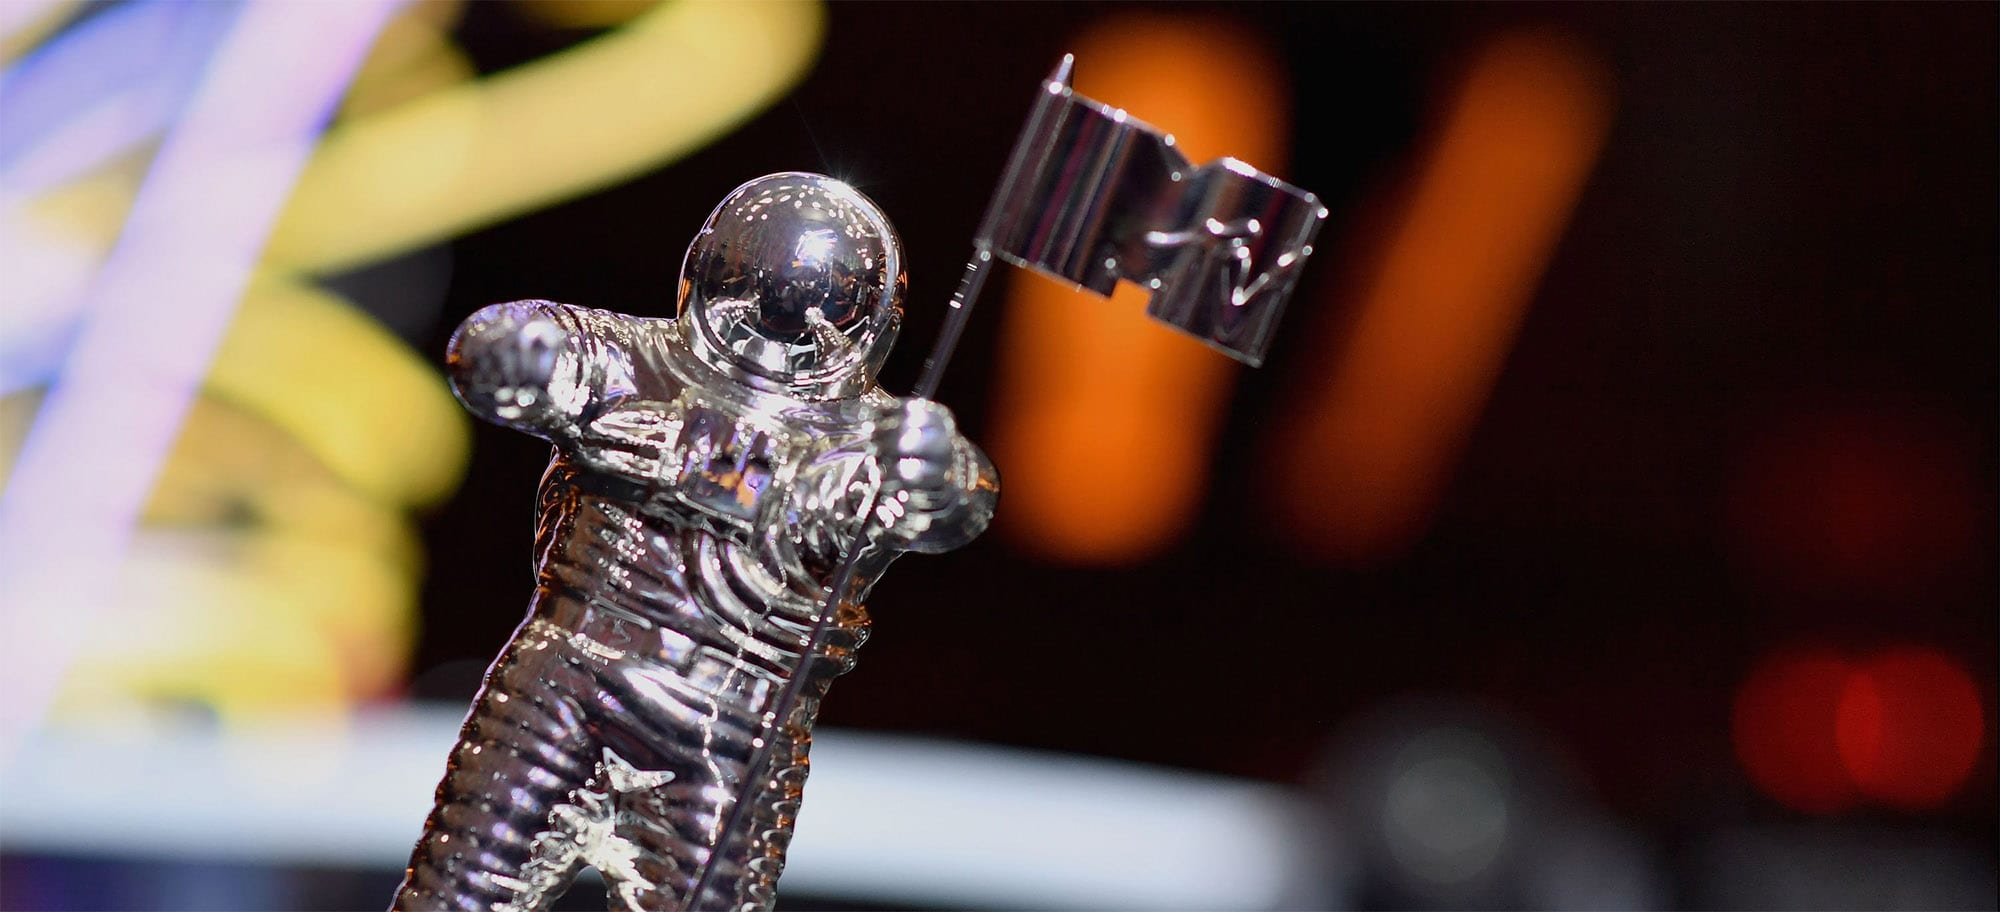 The annual MTV Video Music Awards unfolded in the early hours of this morning, seeing a number of mainstream music artists vying to bag one of those silver astronaut statuettes.